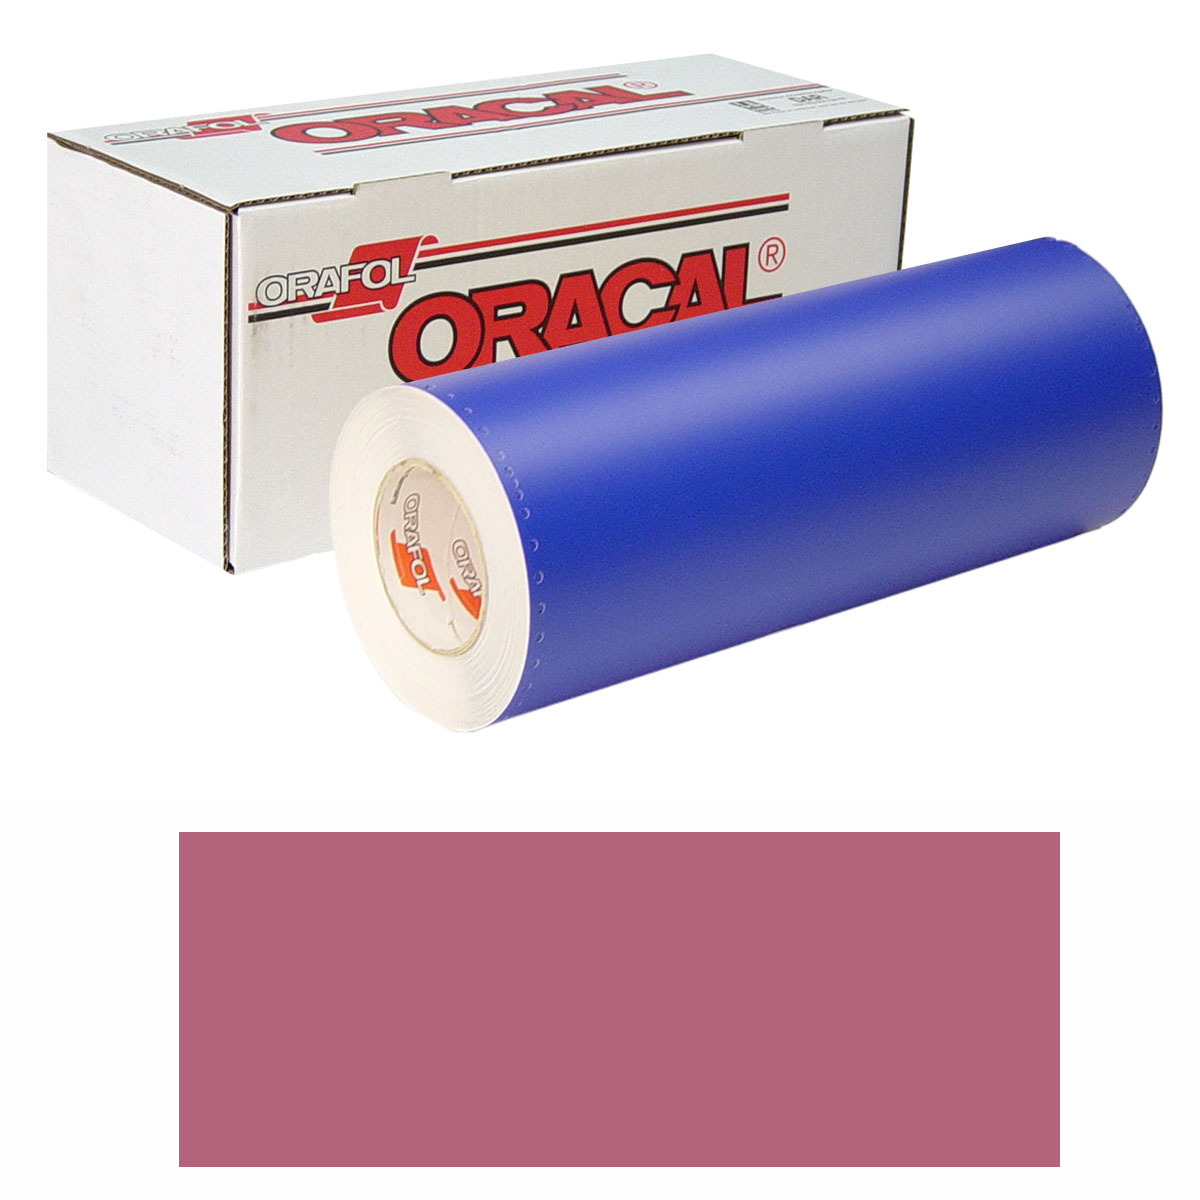 ORACAL 8300 Unp 24In X 10Yd 030 Dark Red